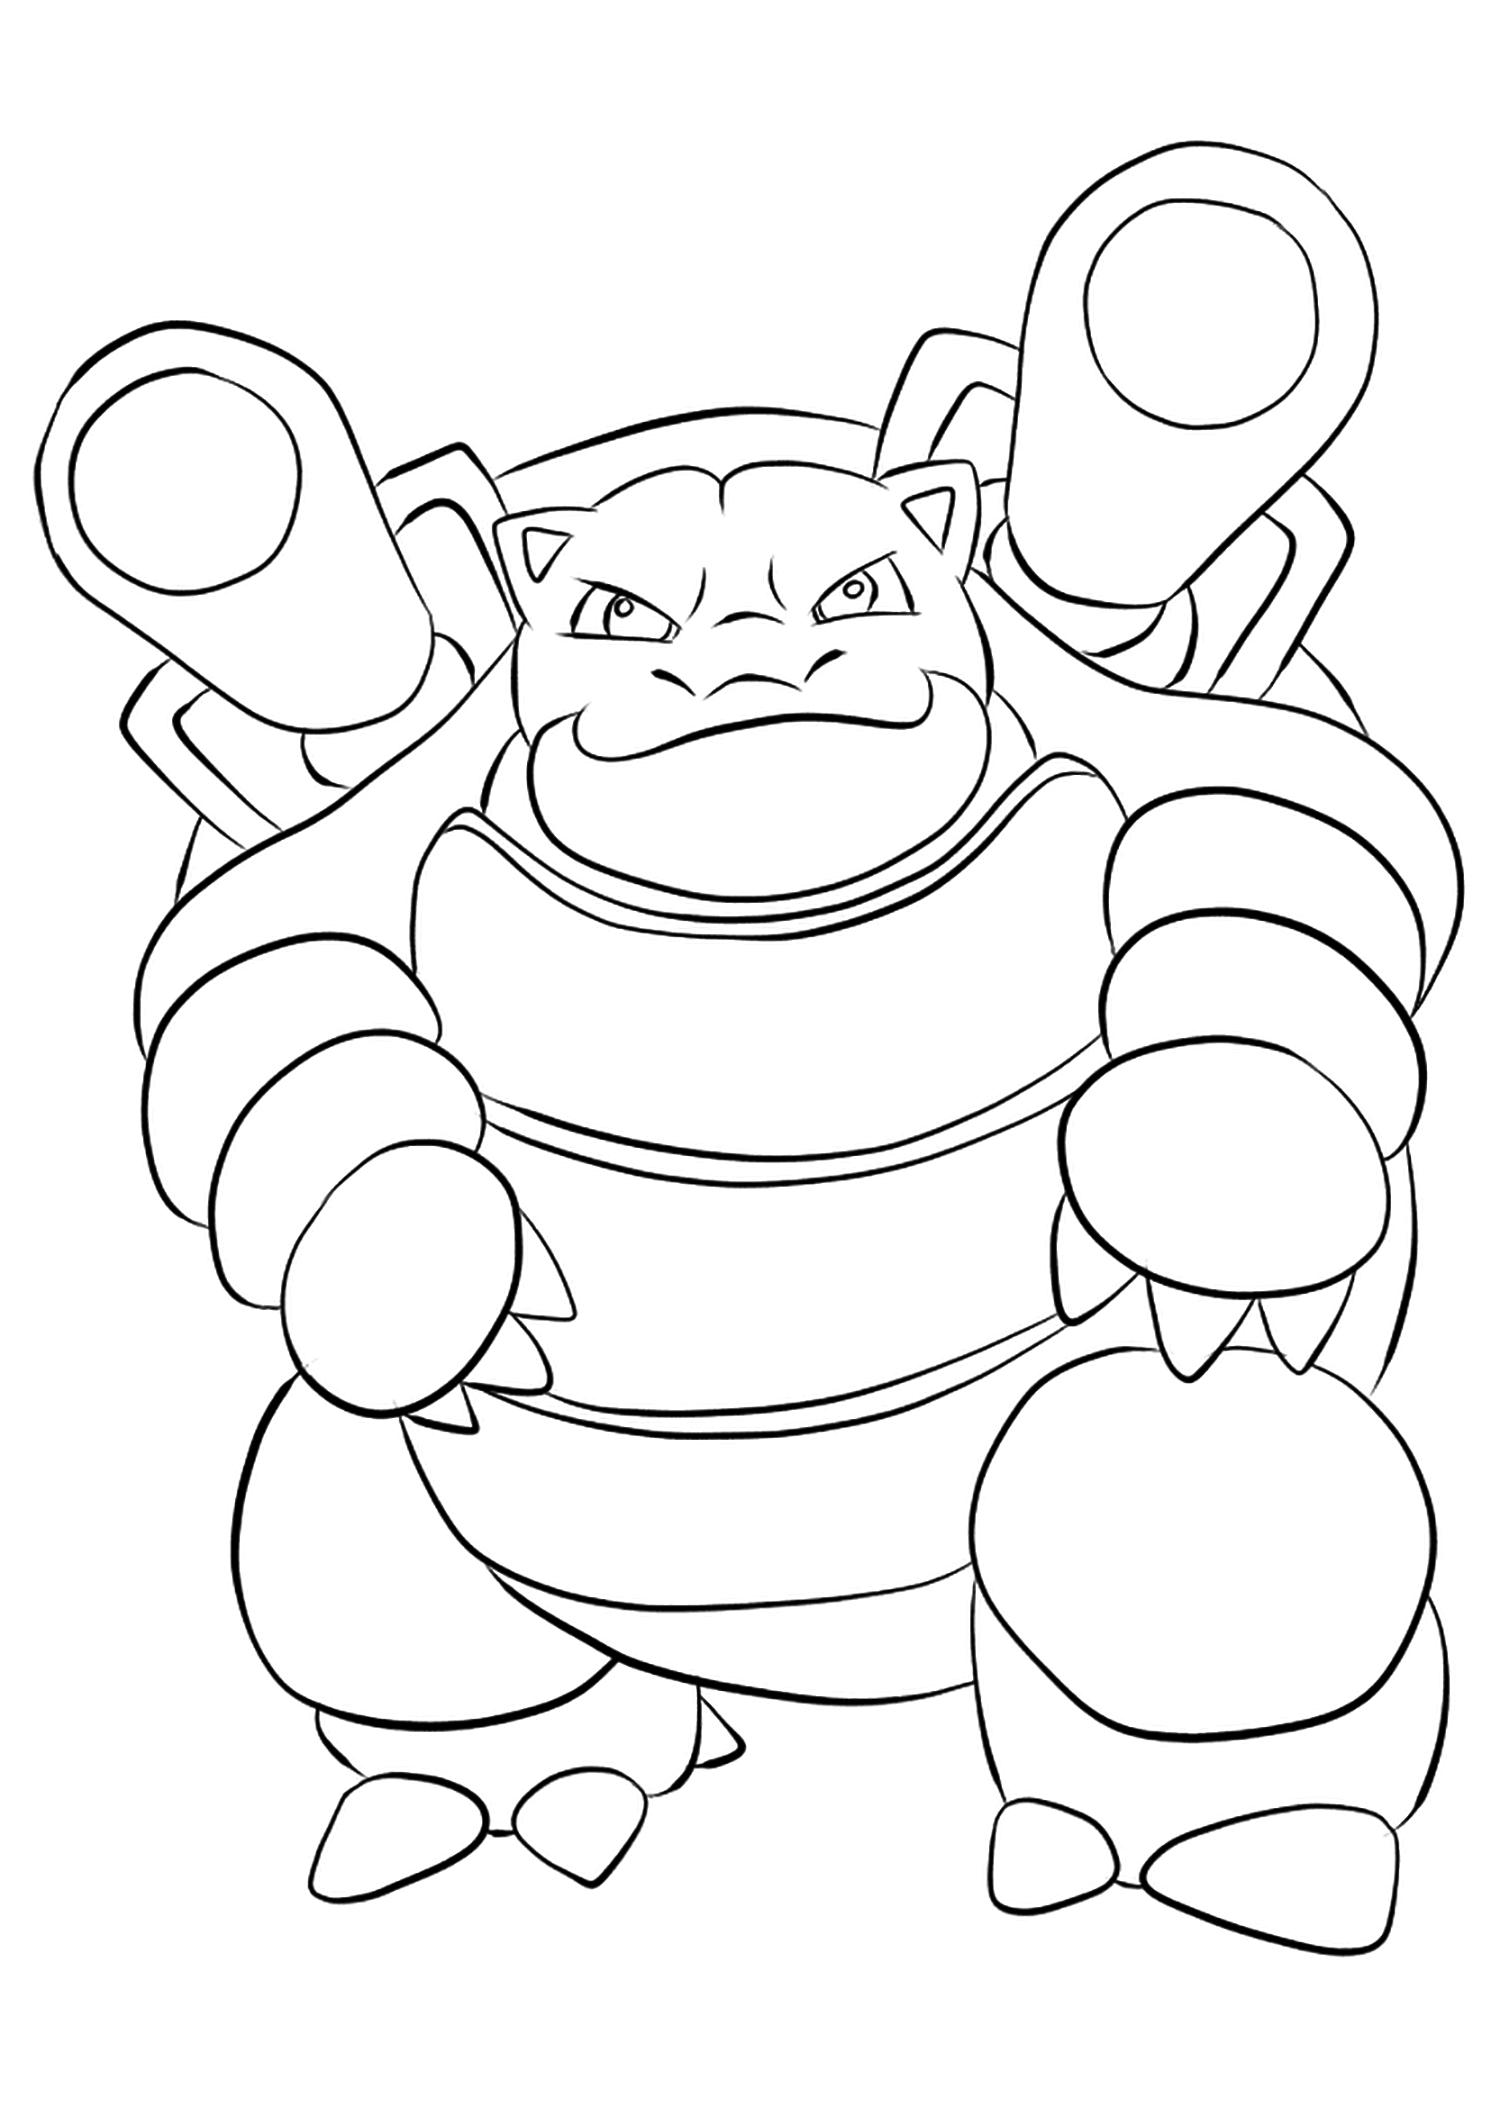 Blastoise Coloring Pages Pokemon Coloring Superhero Coloring Pages